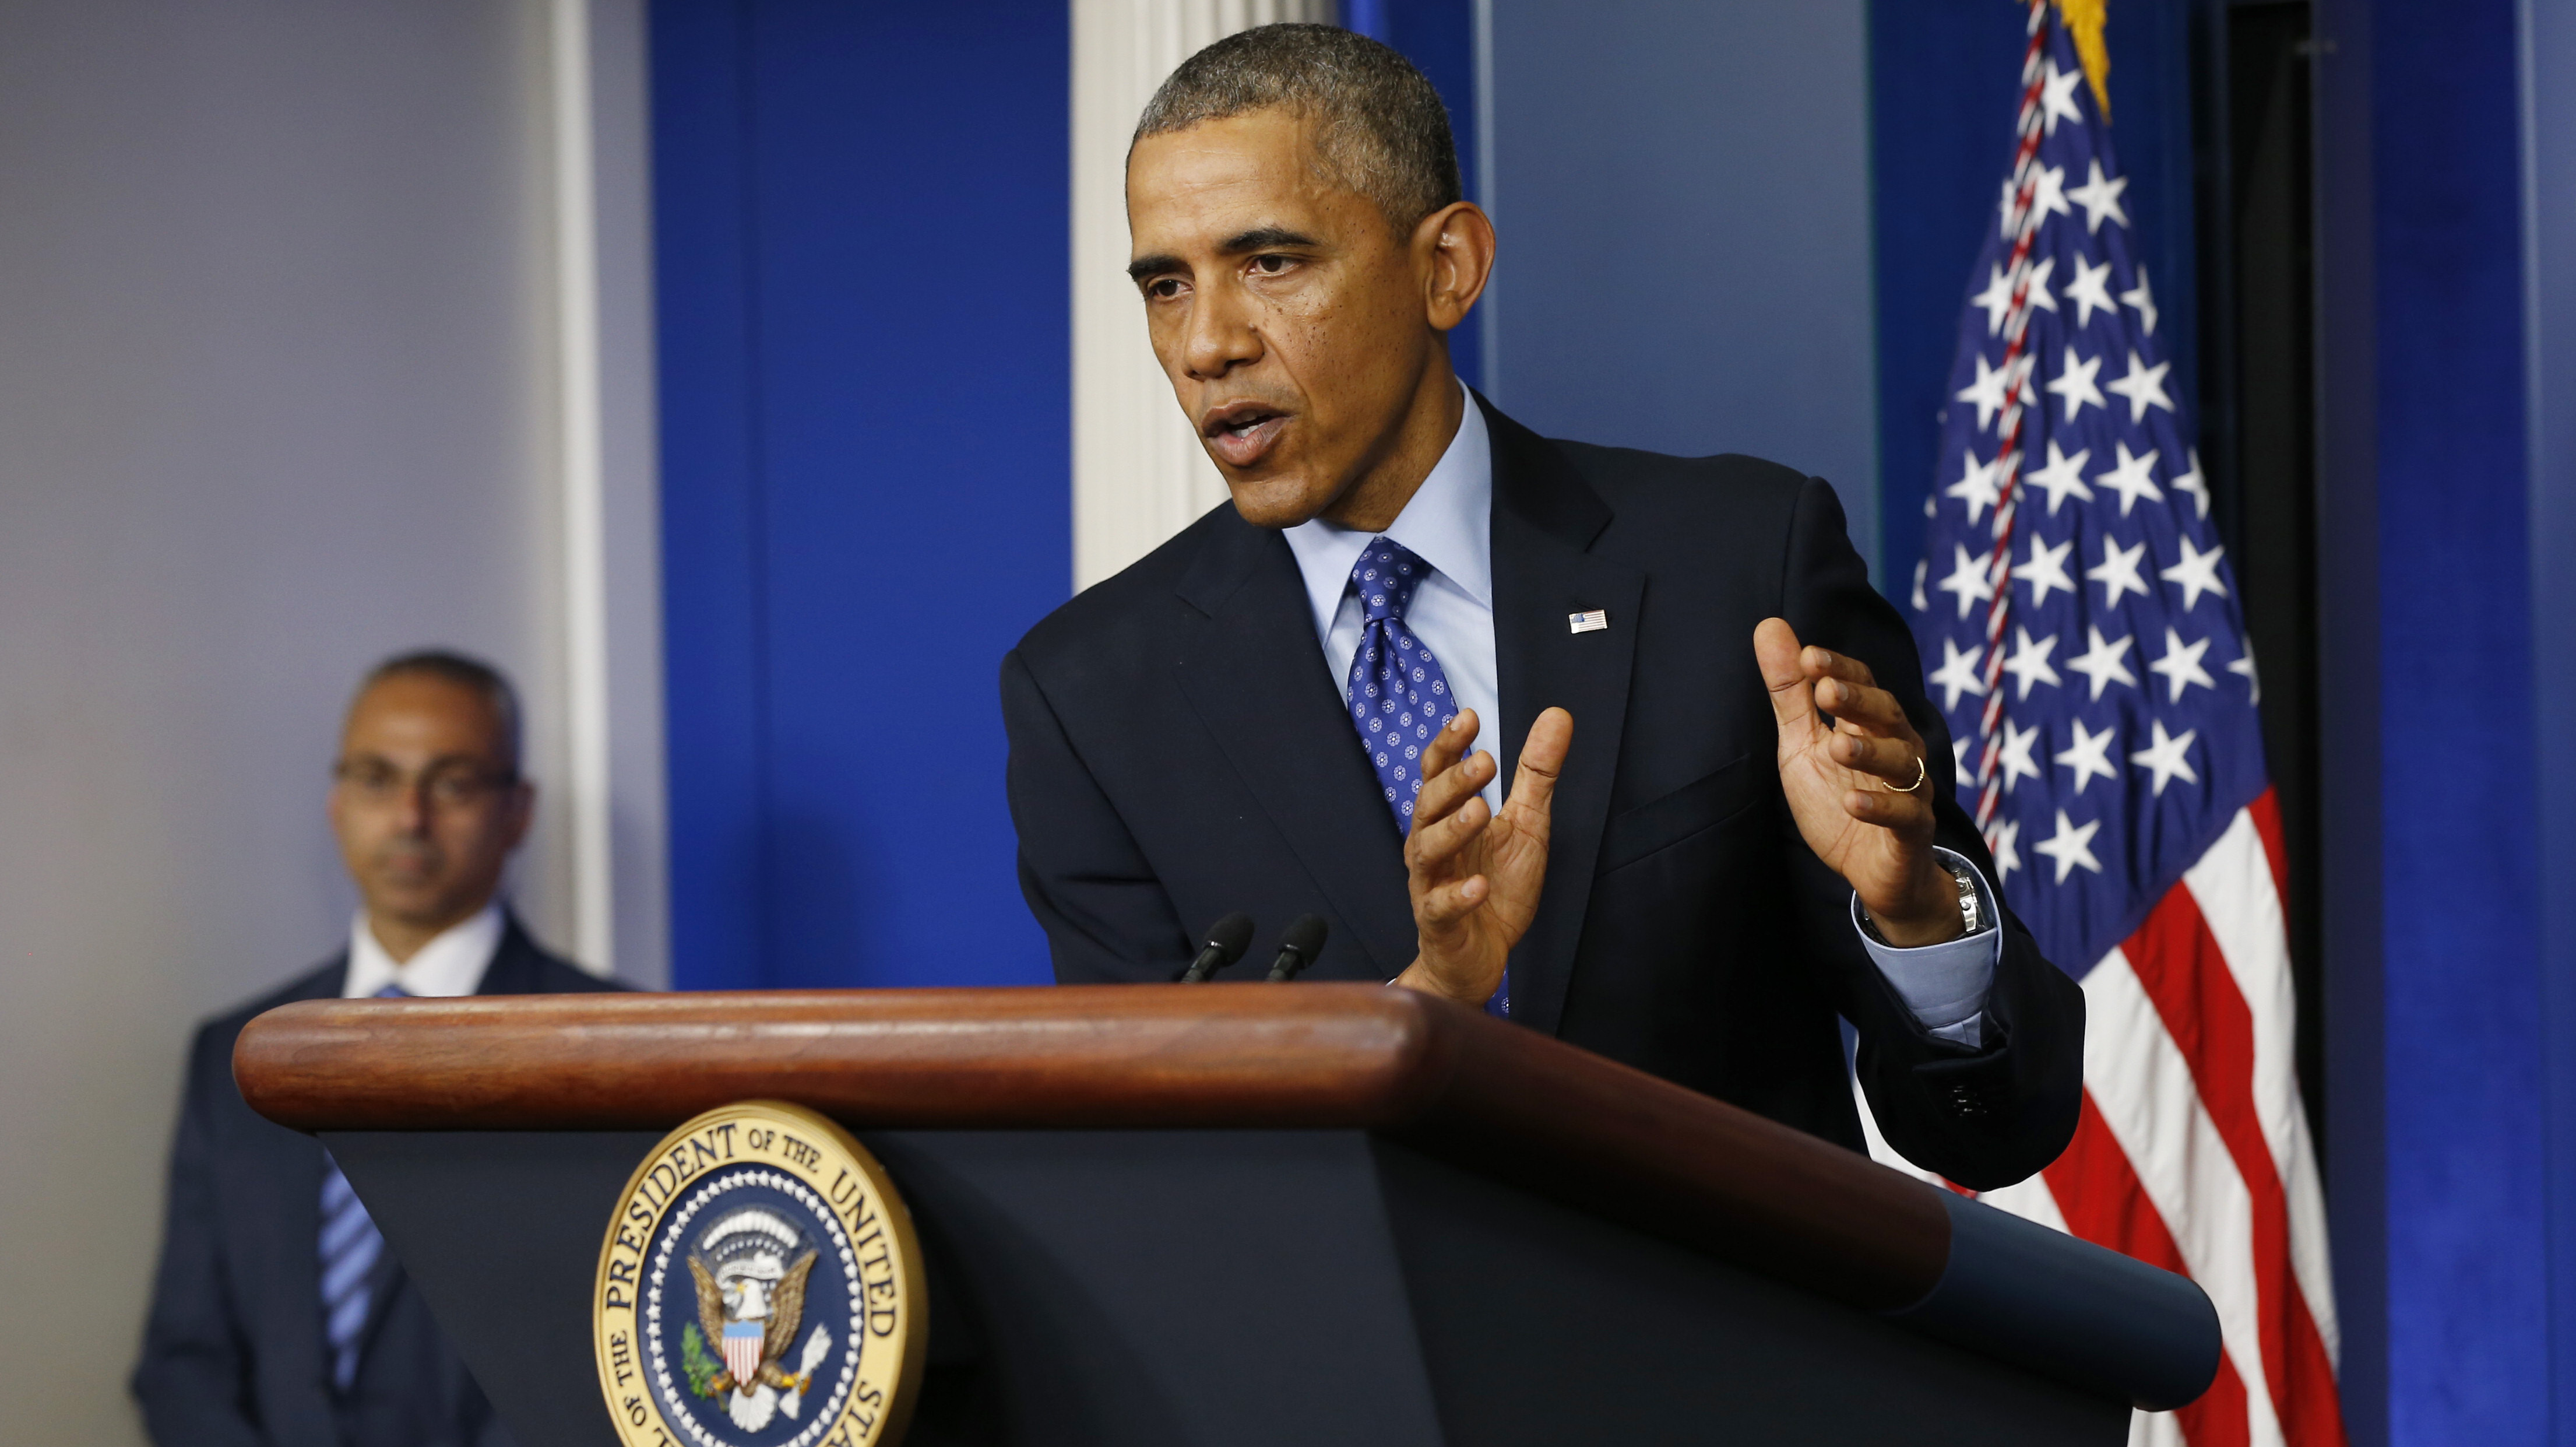 Obama: U.S. Forces Won't Return To Combat In Iraq Crisis